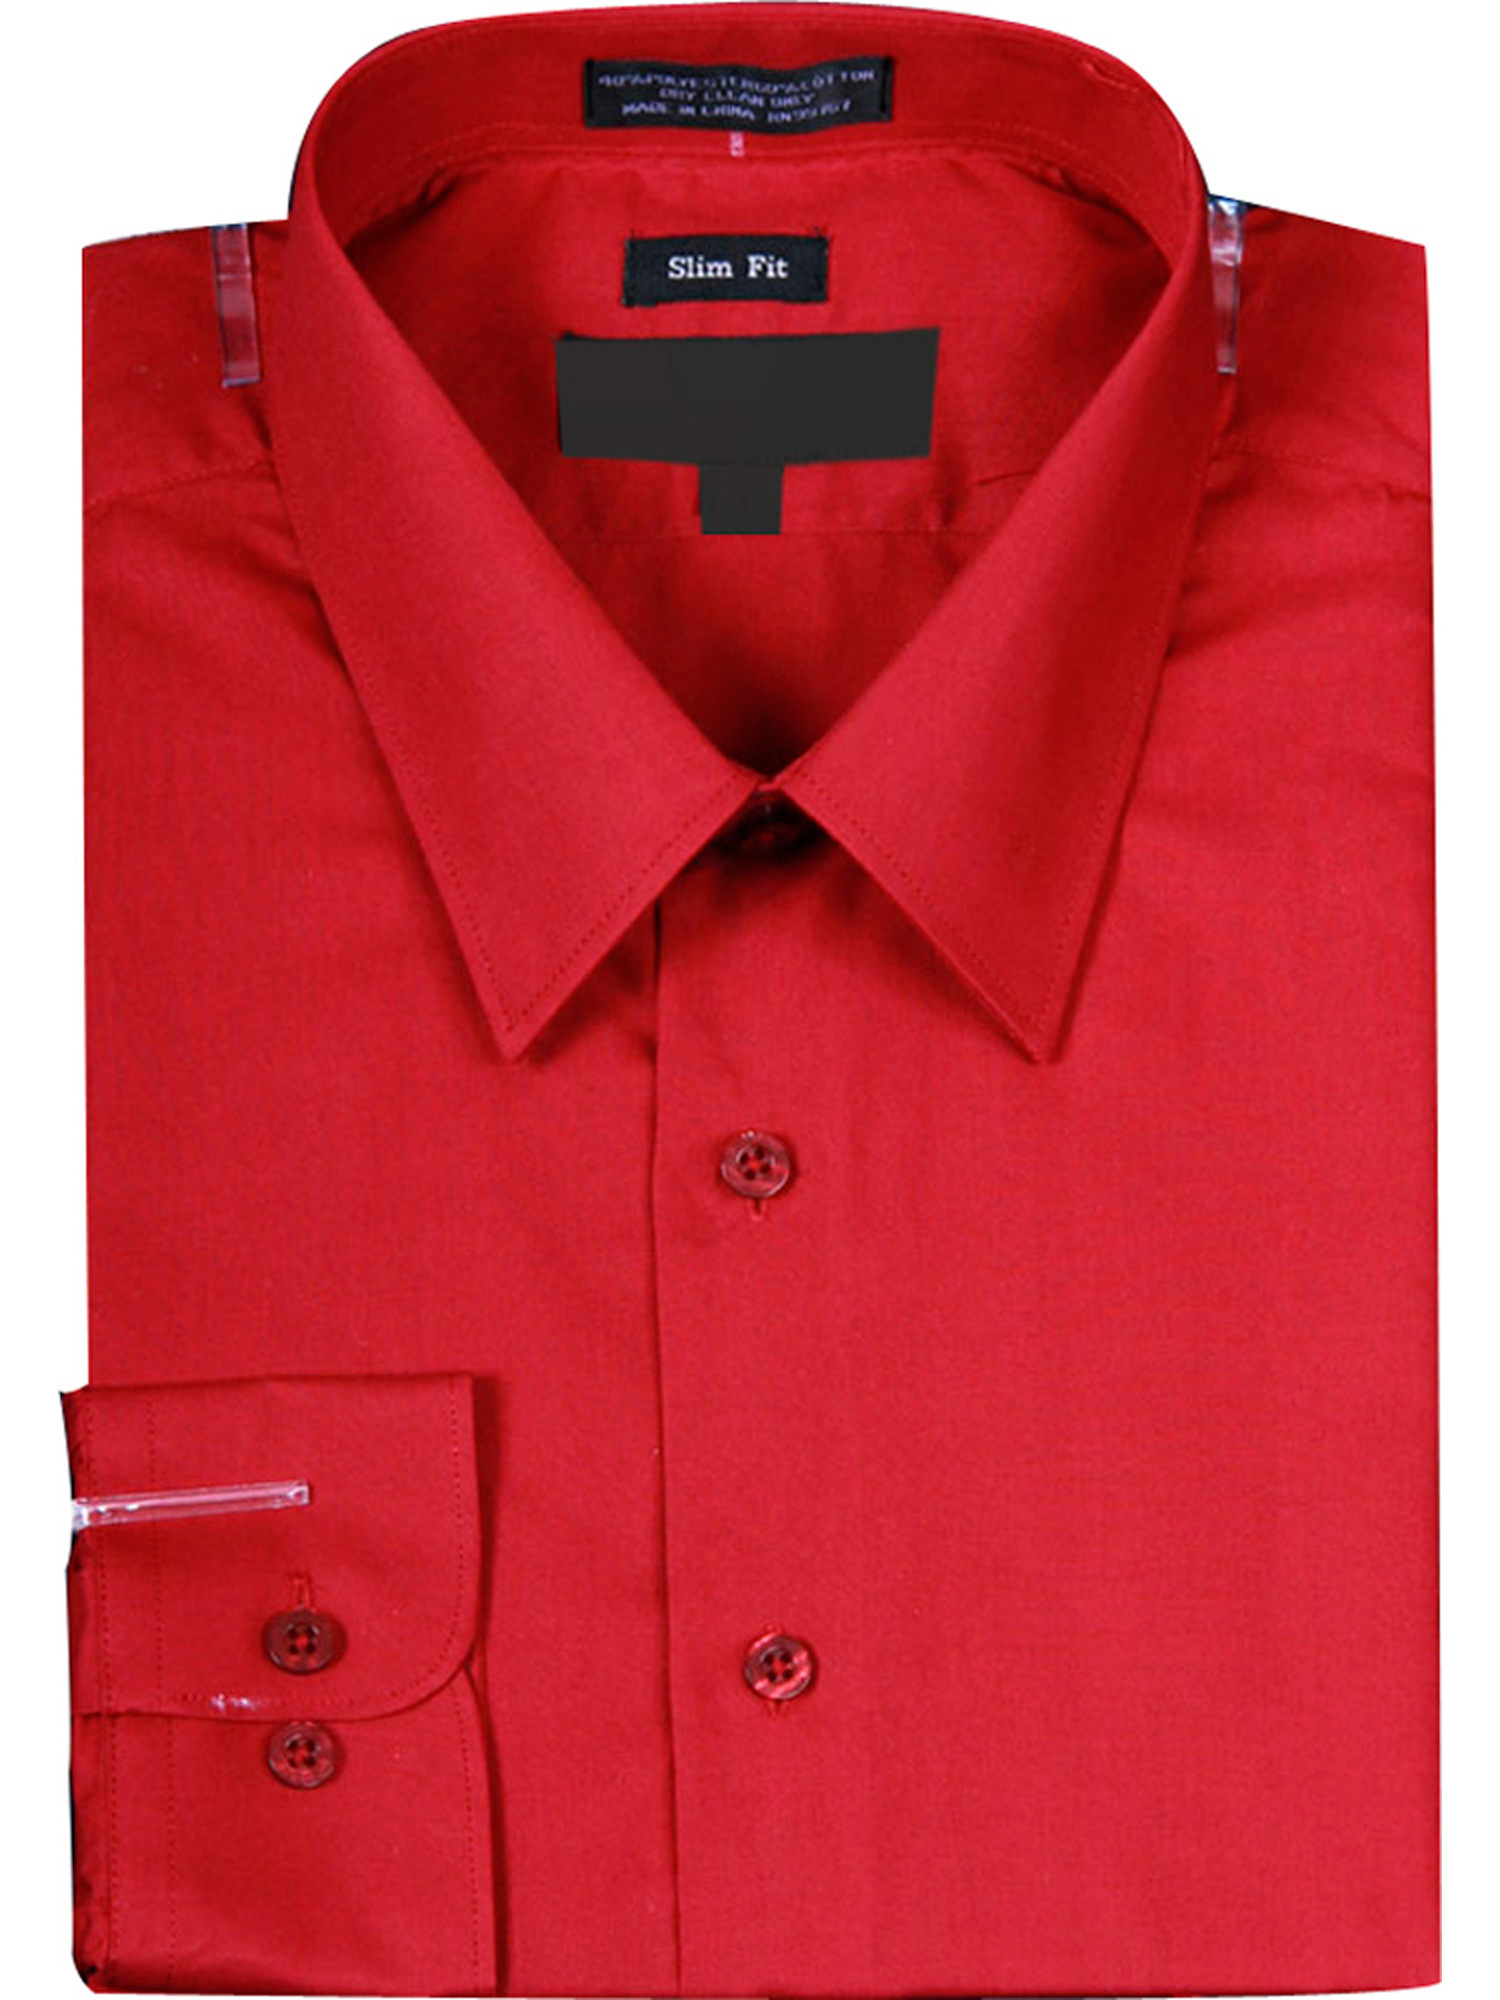 Men's Slim Fit Basic Solid Color Dress Shirt with Button Cuff